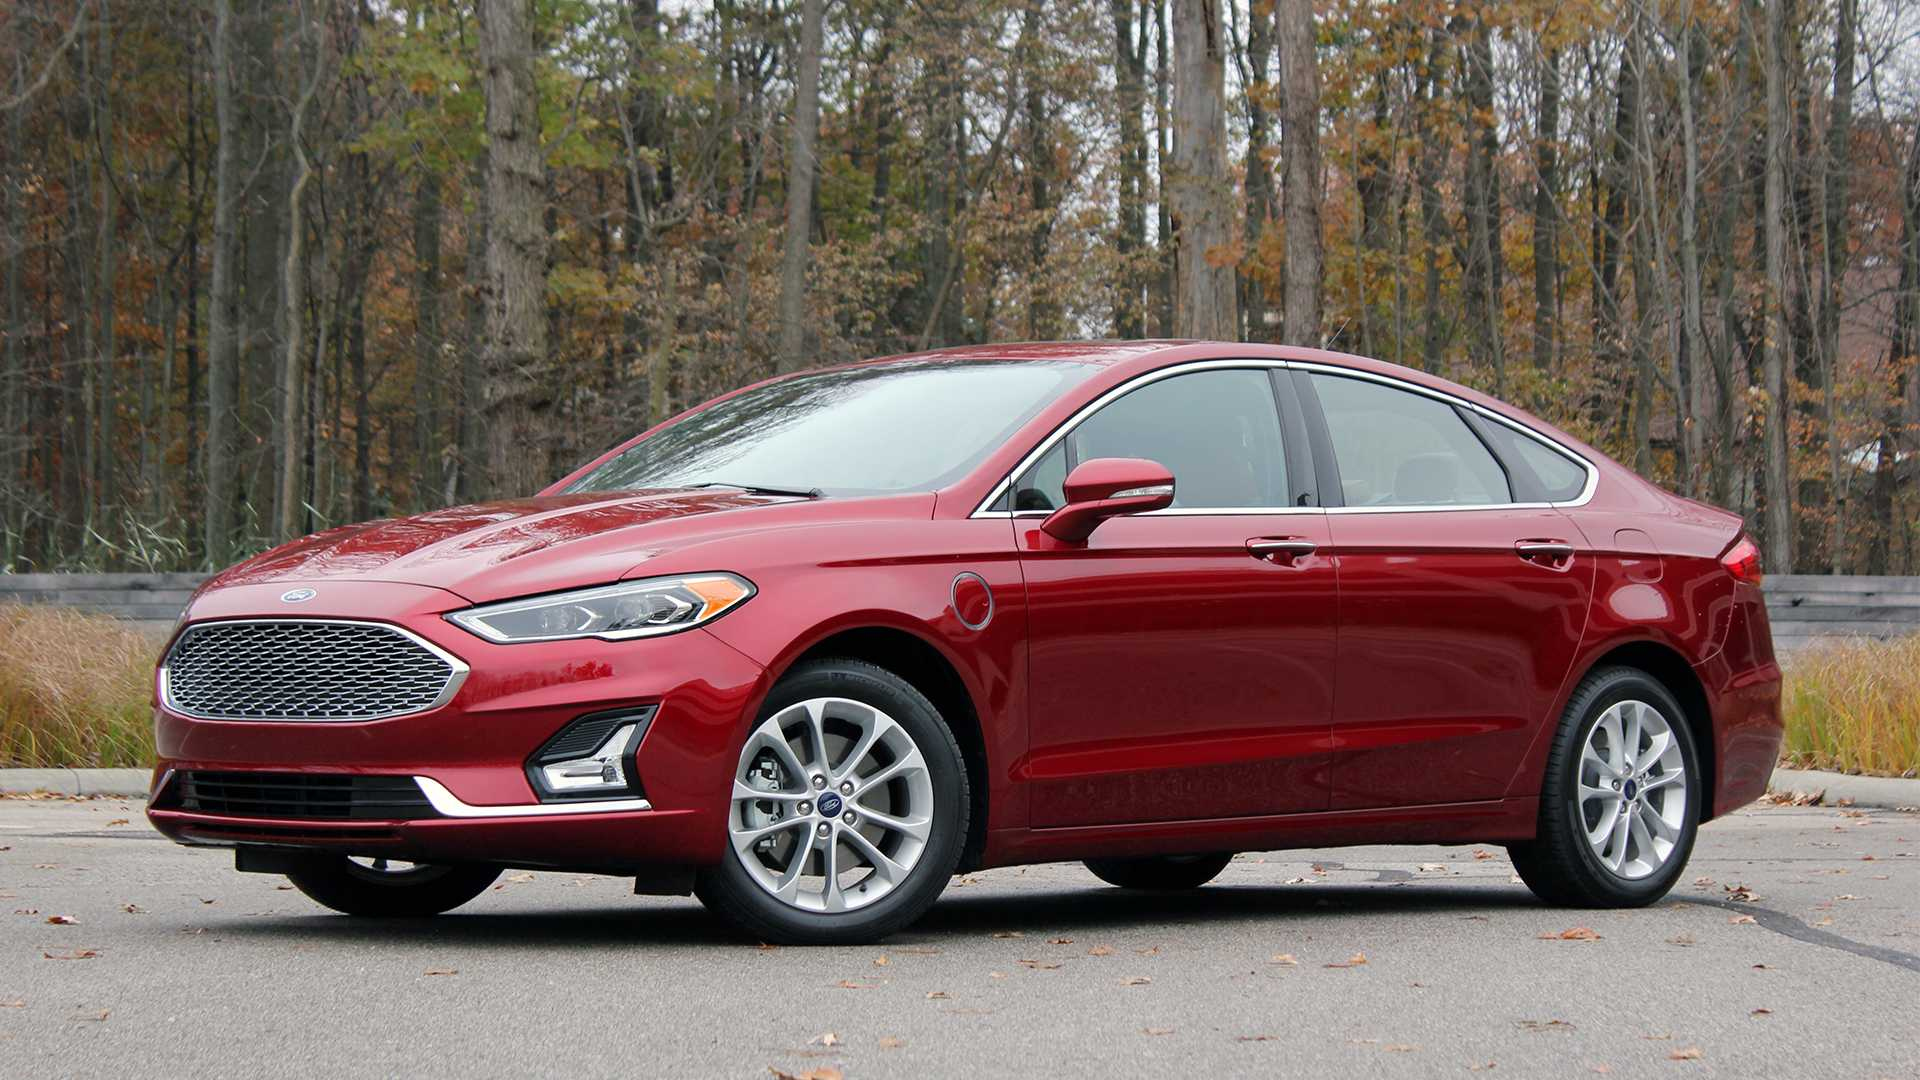 5 Reasons Not To Buy A Ford Fusion Energi (And 2 Reasons You